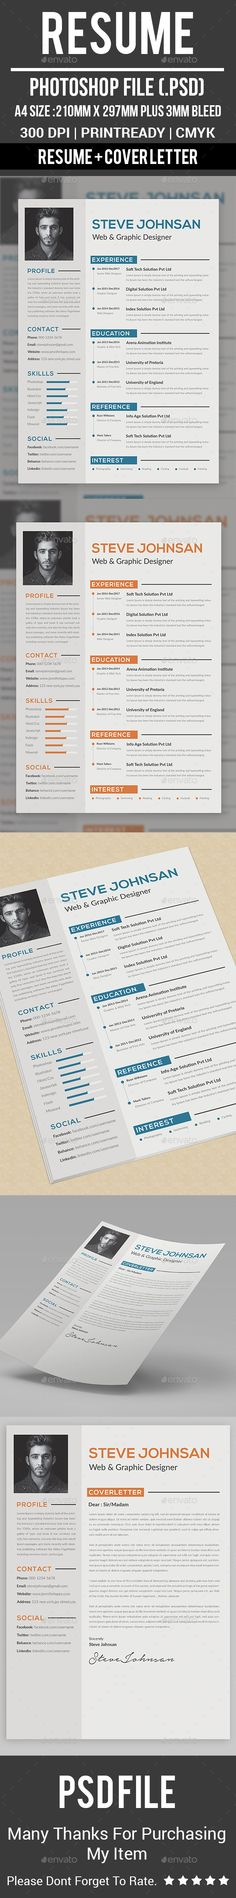 Resume Specifications: Resume plus bleeds total 300 dpi, CMYK photos areNOTincluded. All text editable wi Resume Layout, Job Resume, Resume Tips, Resume Design, Resume Ideas, Resume Action Words, Resume Words Skills, College Resume Template, Best Resume Template